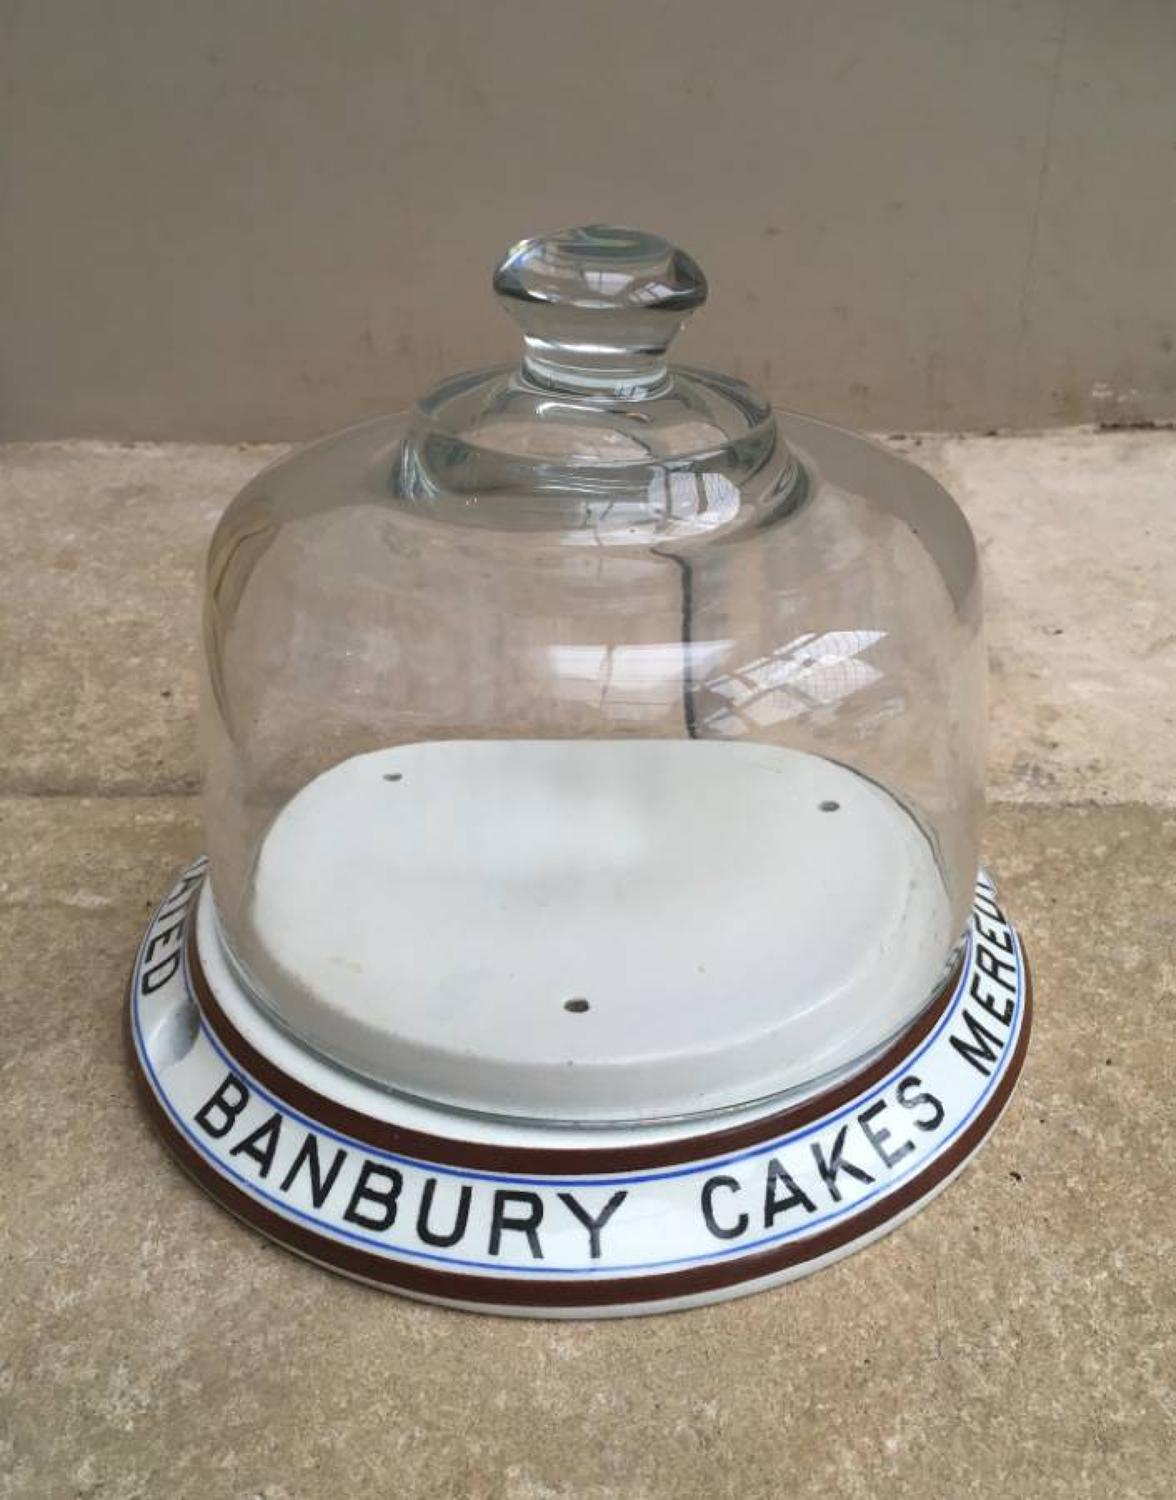 Rare Edwardian Advertising Dome - Meredith & Drew Banbury Cakes